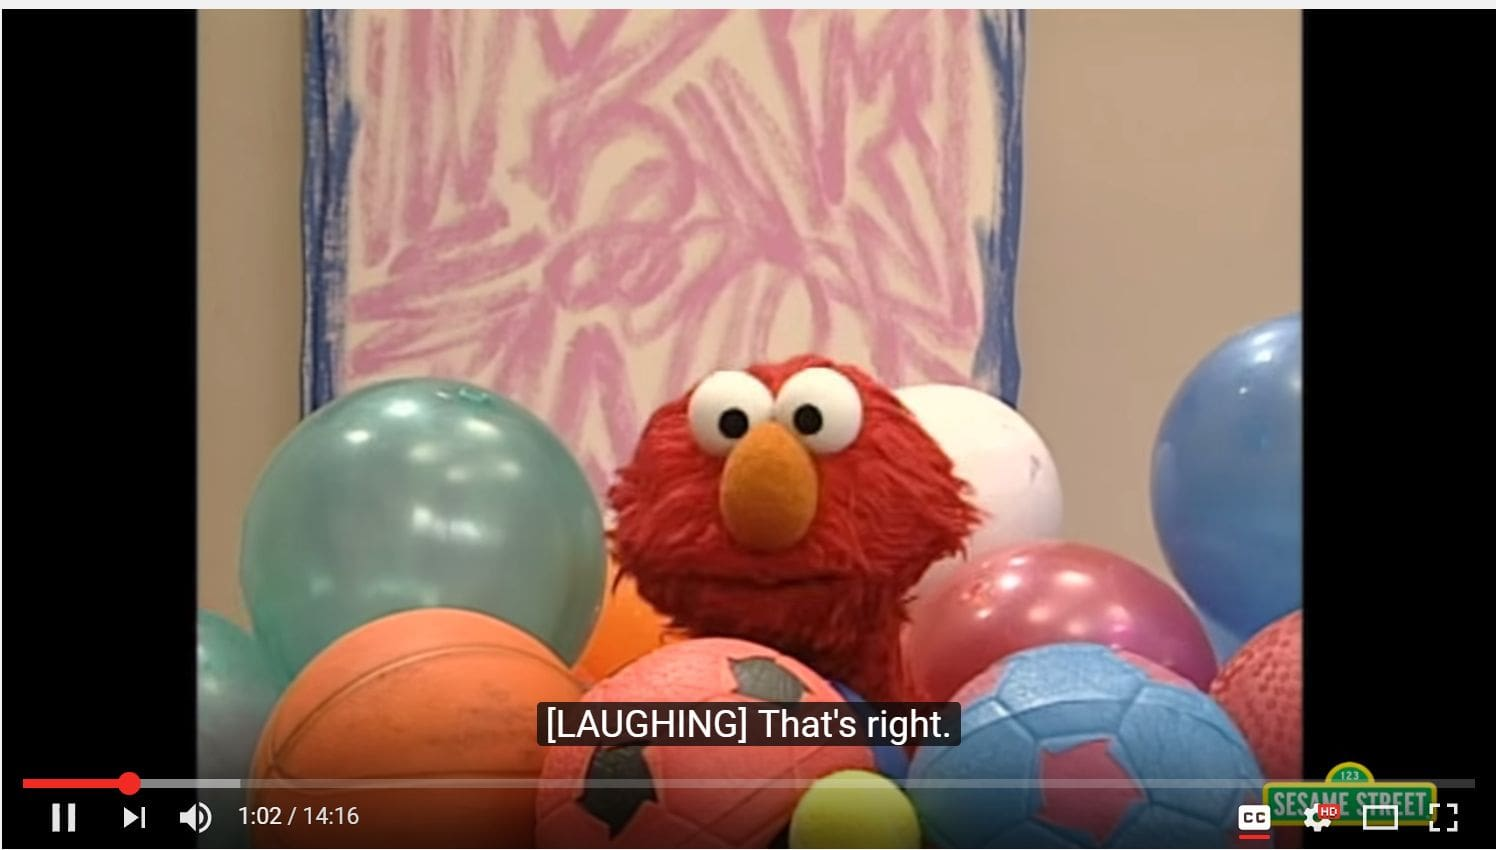 Sesame Street videos that have captions are helpful for those who cannot see them.